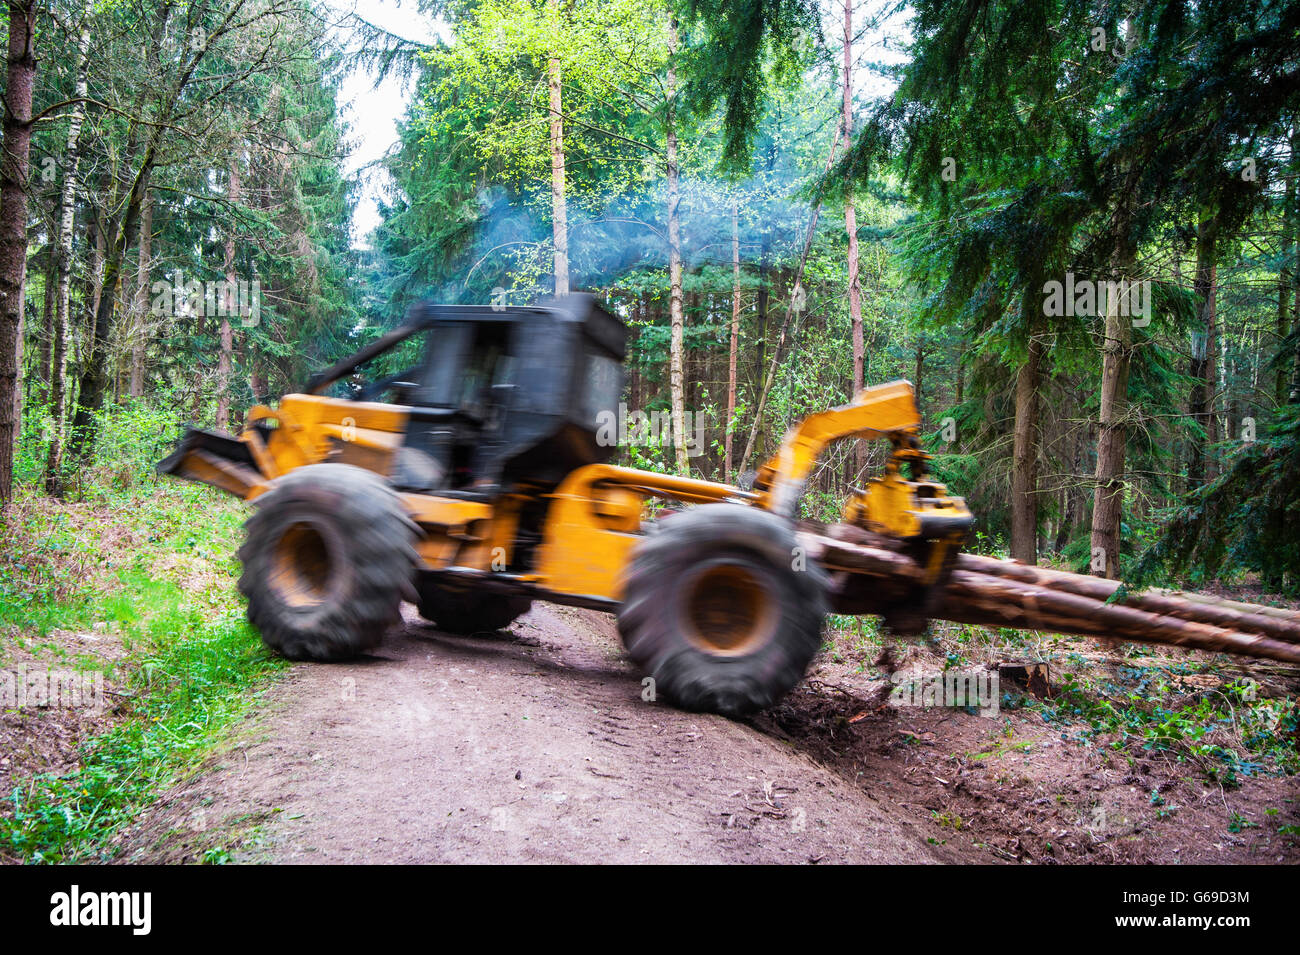 Hauling wood in the forest by a grapple skidder, motion of hauling machine and hauled wood blurred - Stock Image